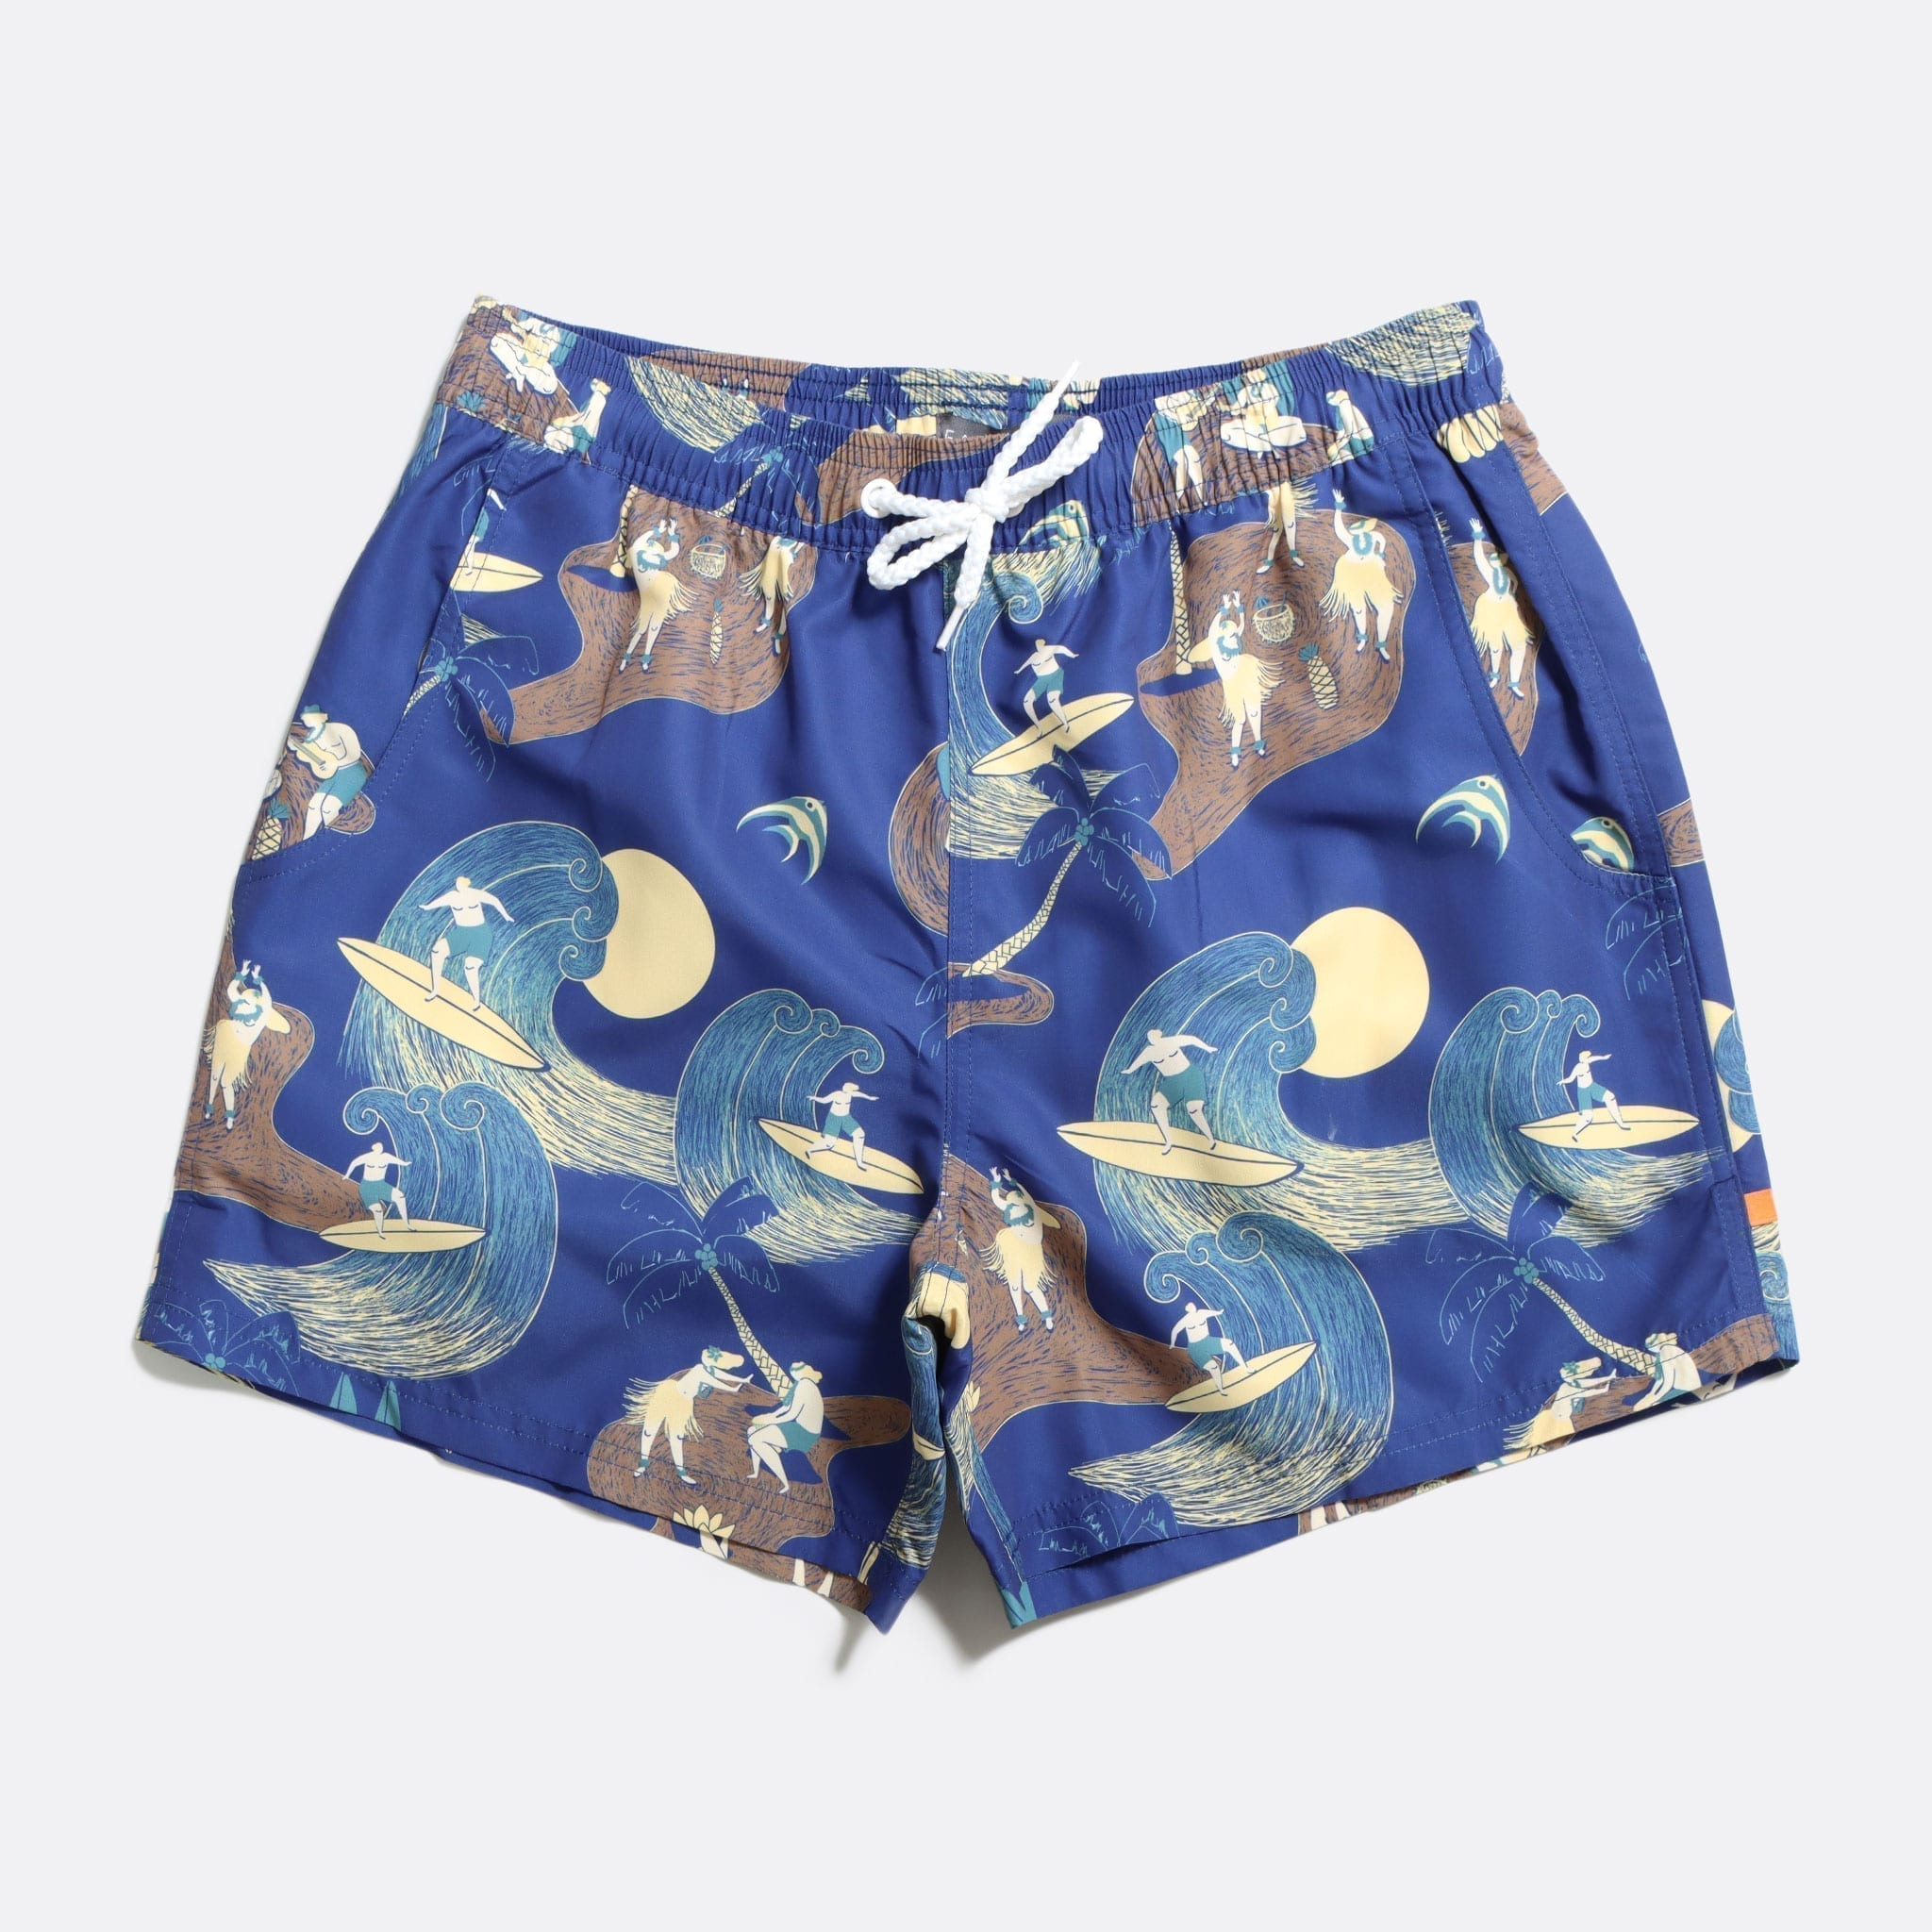 Far Afield Printed Swimshorts a Navy Recycled Plastic Sustainable Fabric